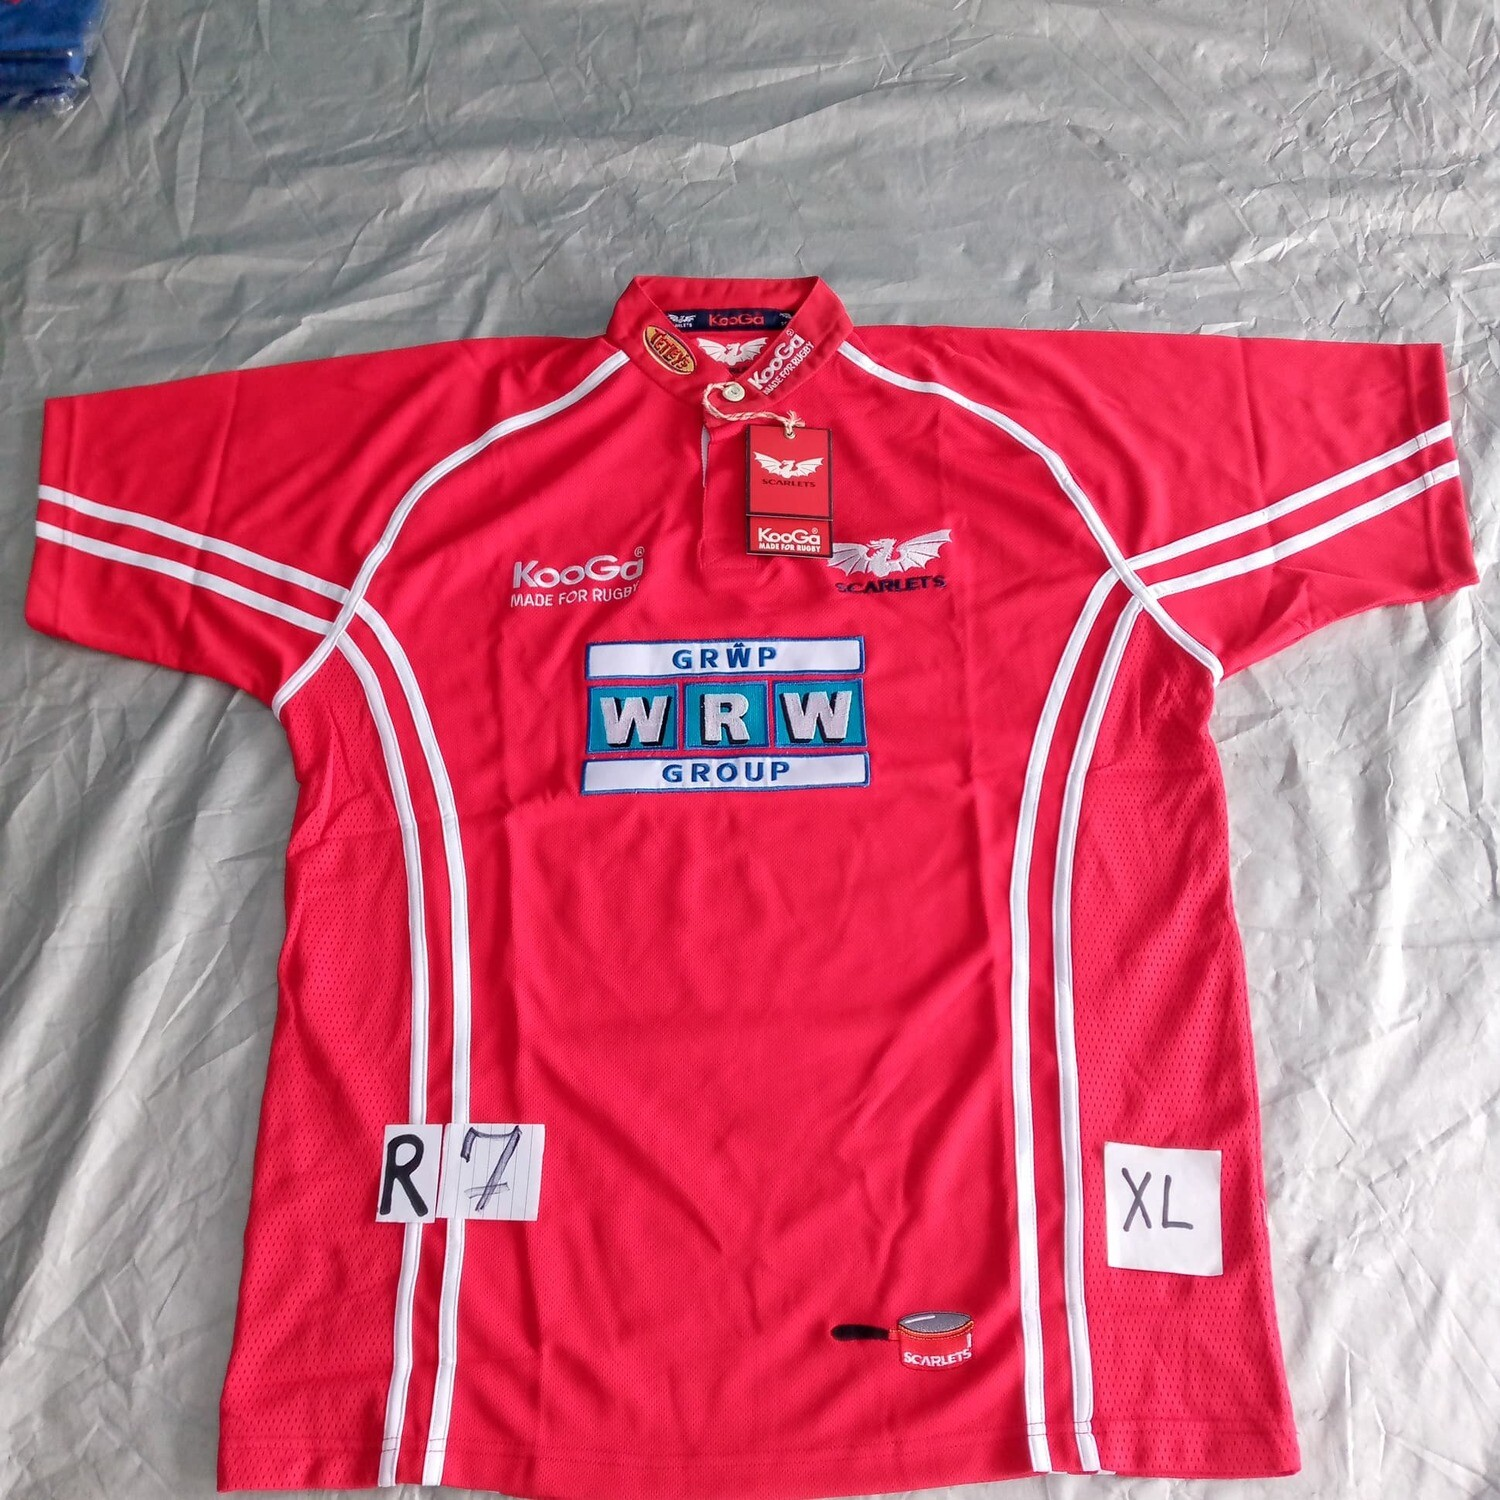 R7 Scarlets Rugby Maglia Jersey Shirt Rugby Scarlets XL